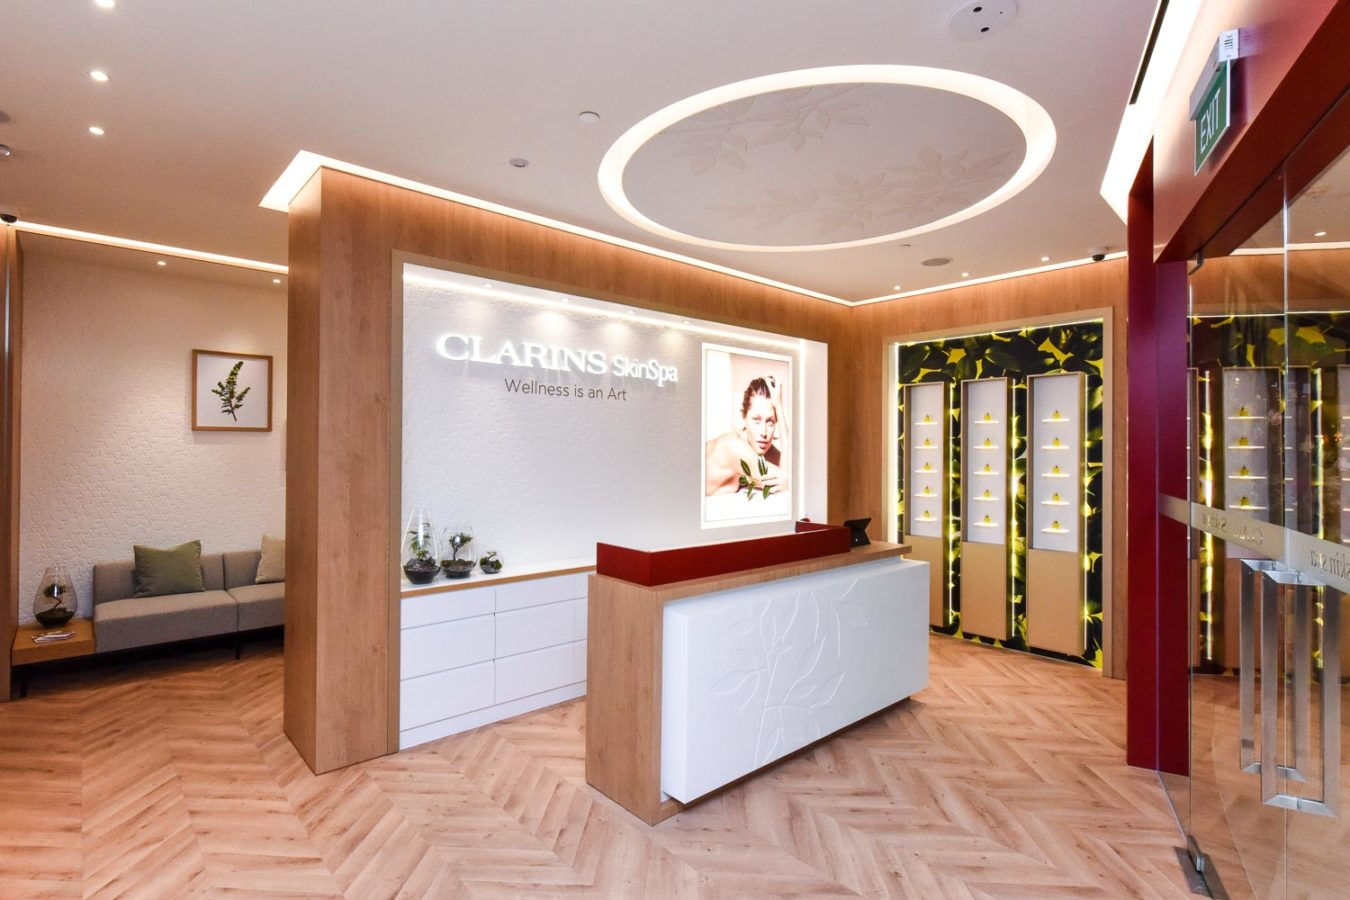 Clarins re-opens its specialised Skin Spa in ION Orchard